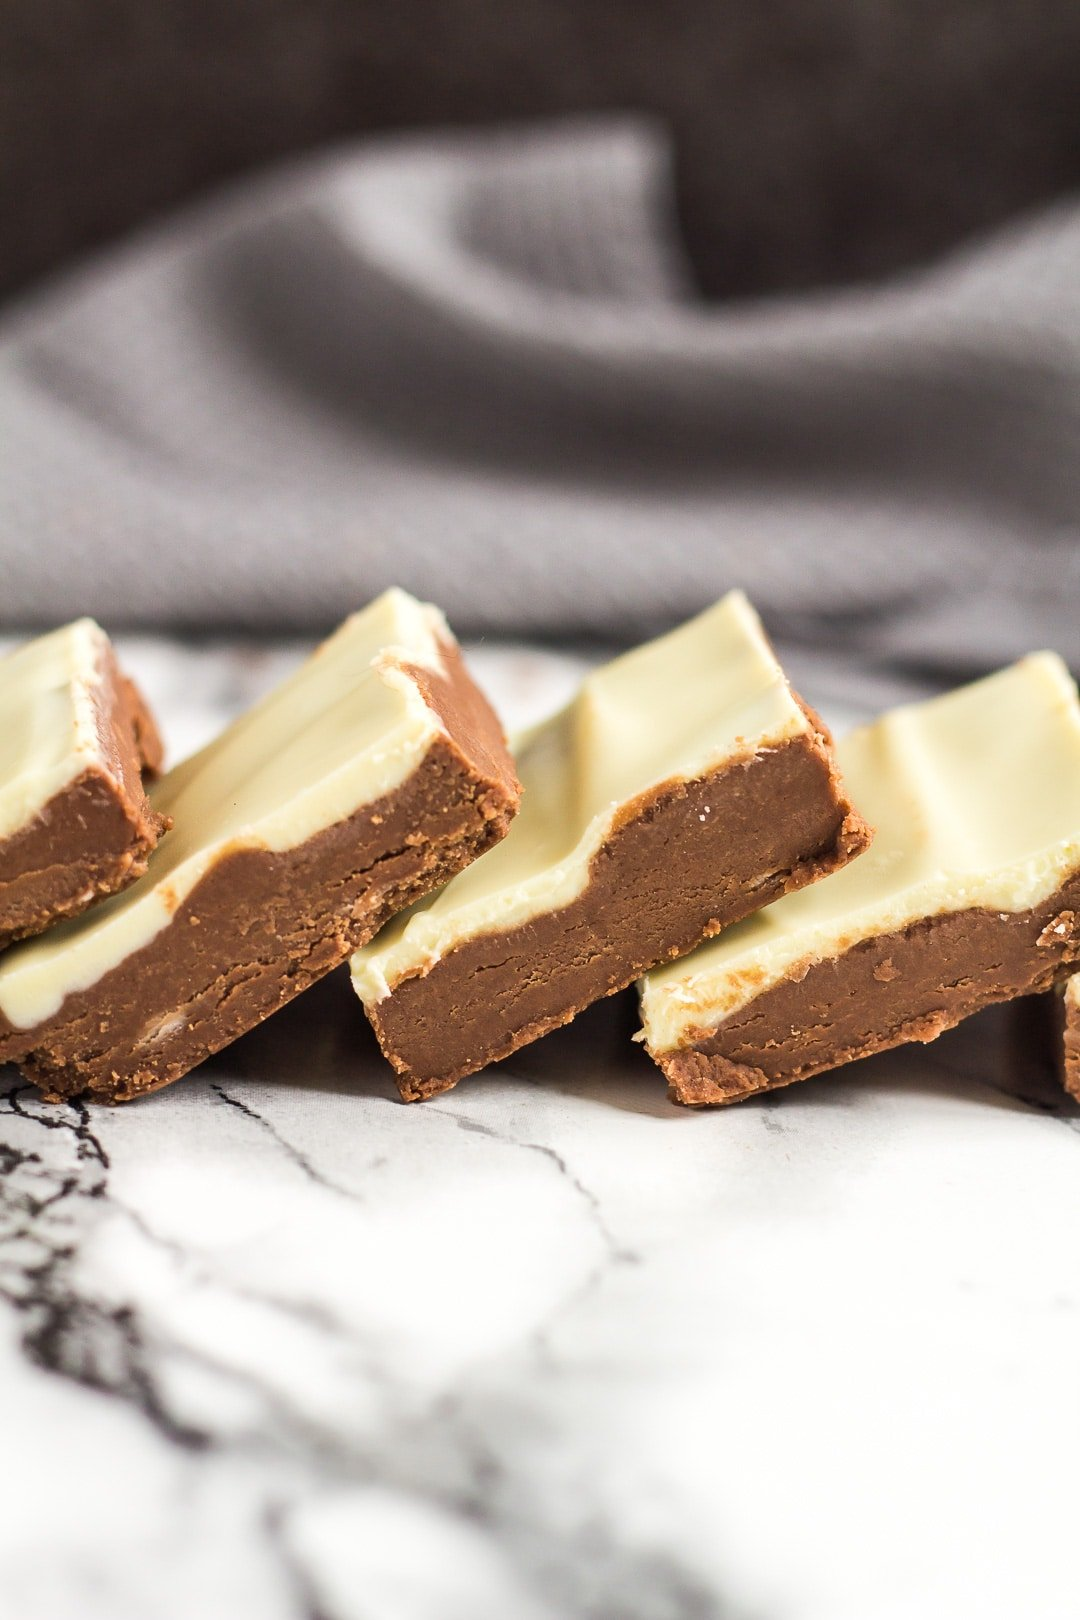 No-Bake White Chocolate Nutella Bars overlapped in a row on a marble background.